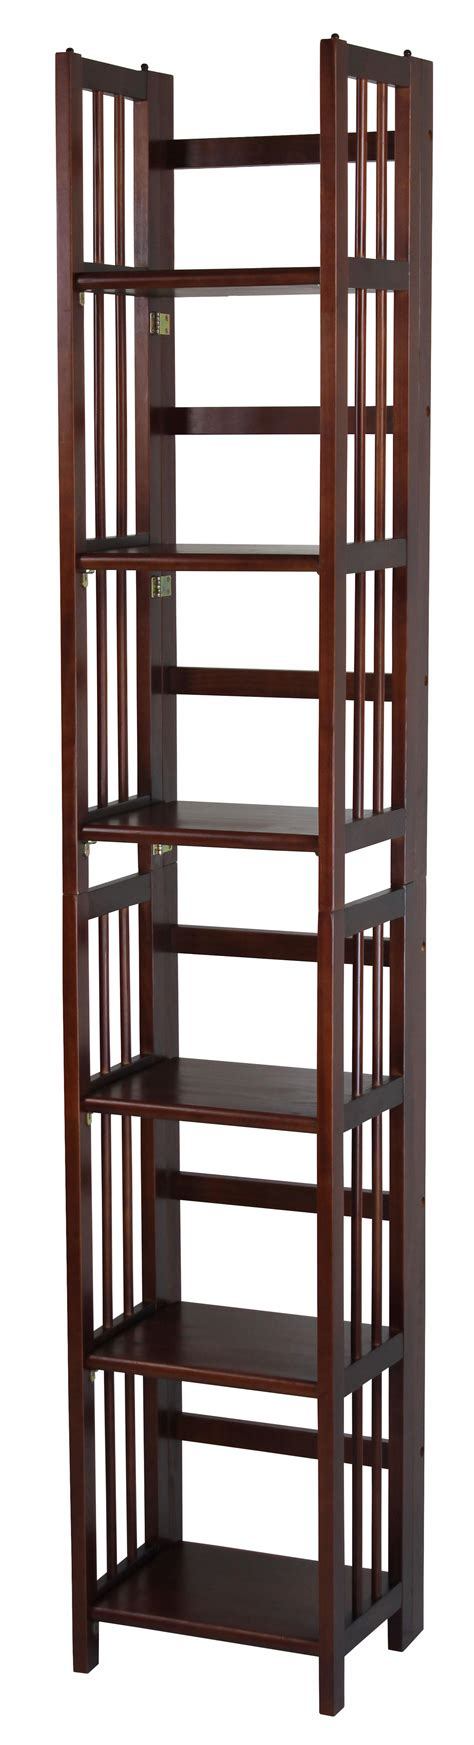 14 Inch Bookcase by Casual Home 3 Shelf Folding Stackable